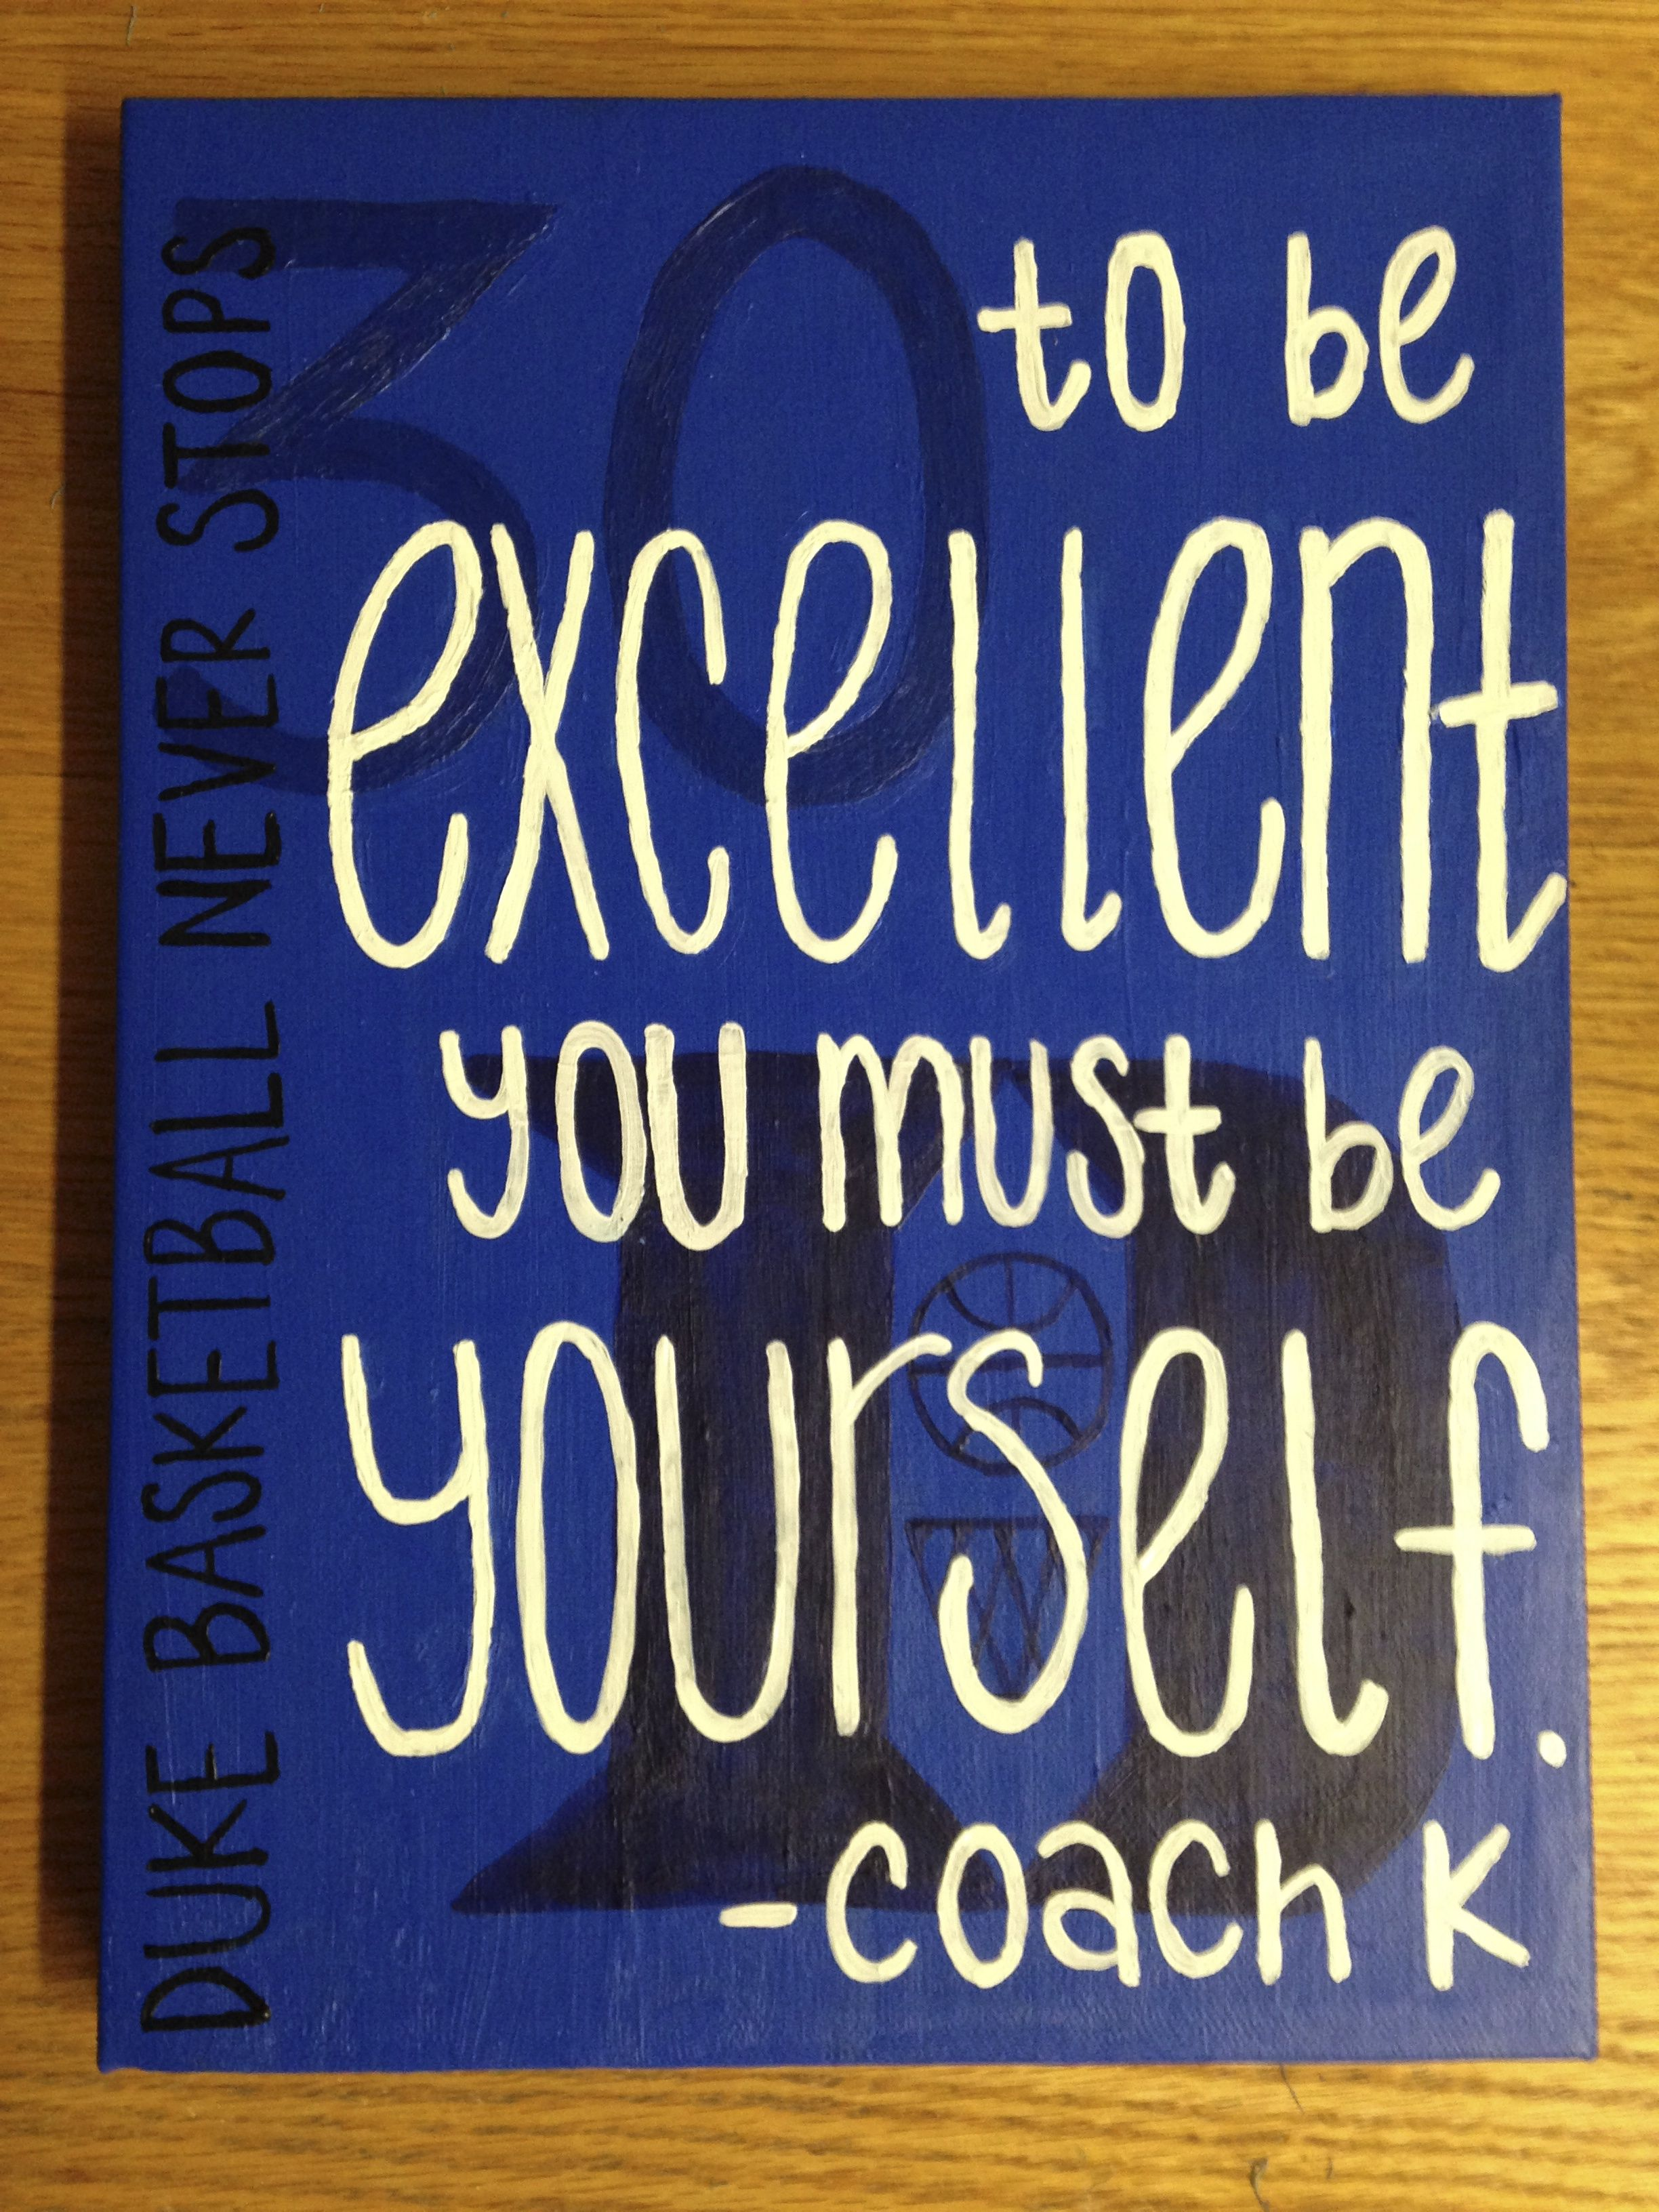 Duke Basketball Canvas Art With A Coach K Quote To Be